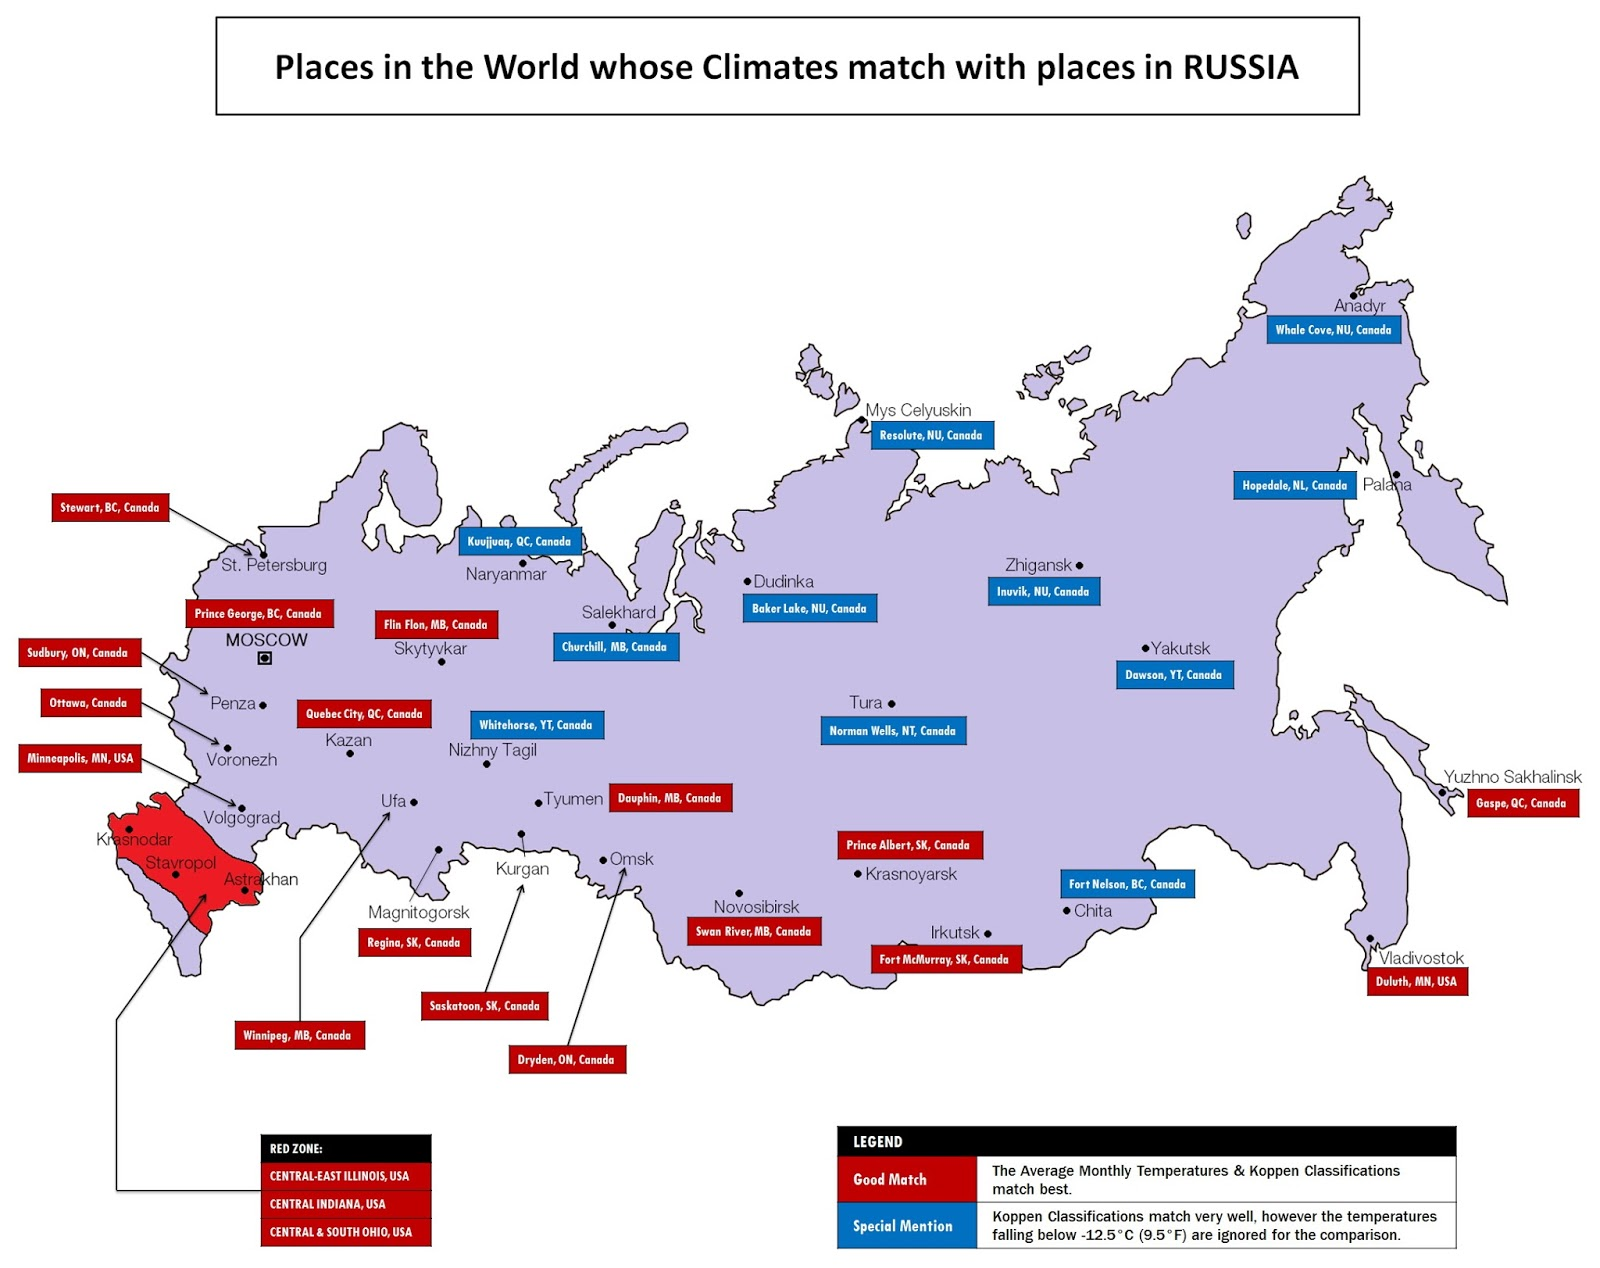 Places in the world whose climates match with Russia